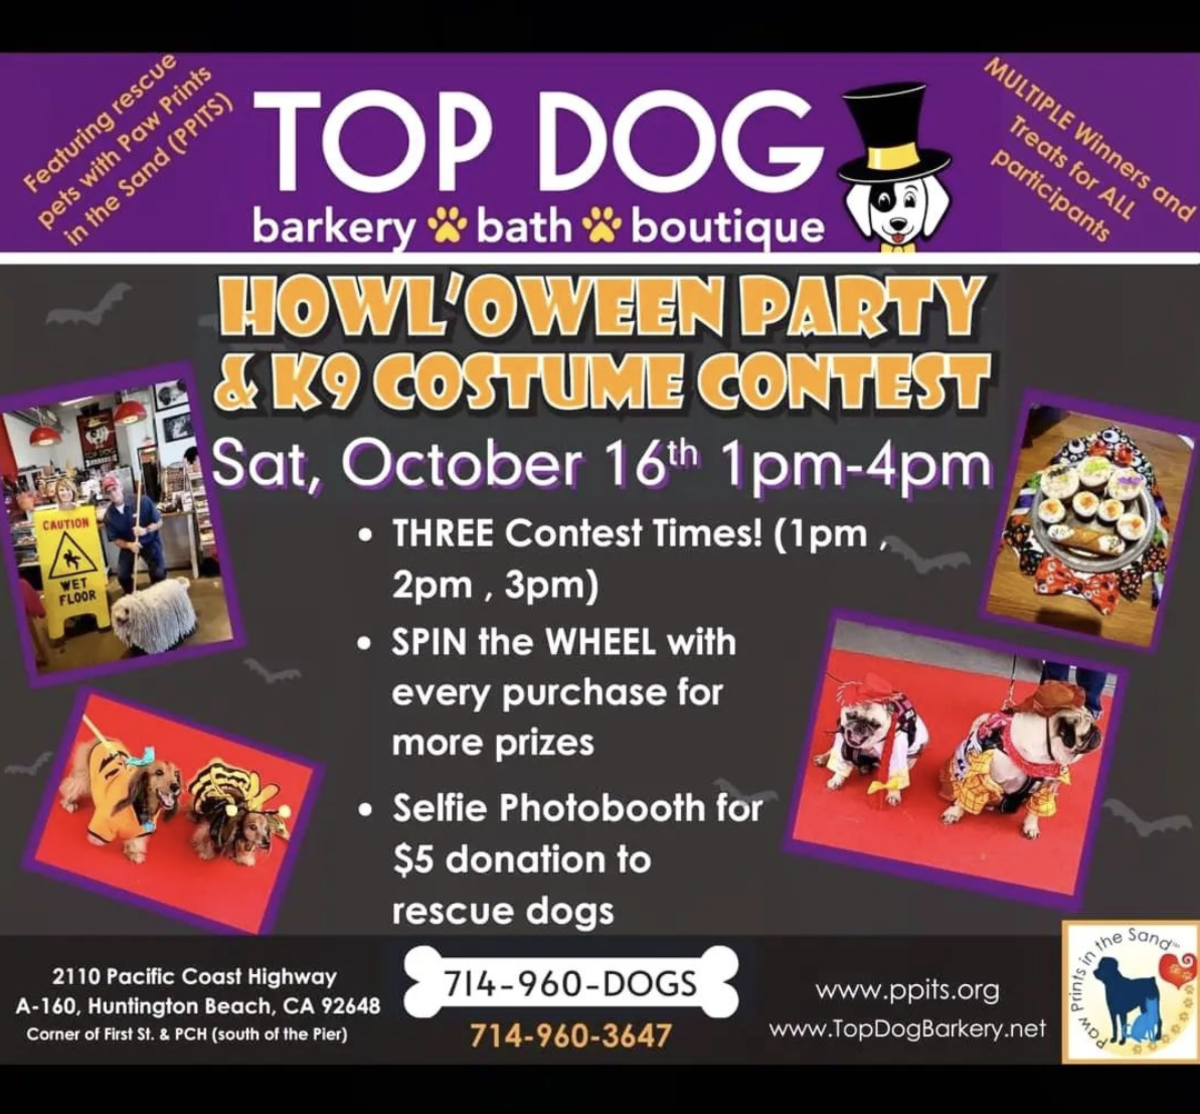 Top Dog Barkery in Huntington Beach, CA is throwing a Howl'Oween Party & K9 Costume Contest on October 16